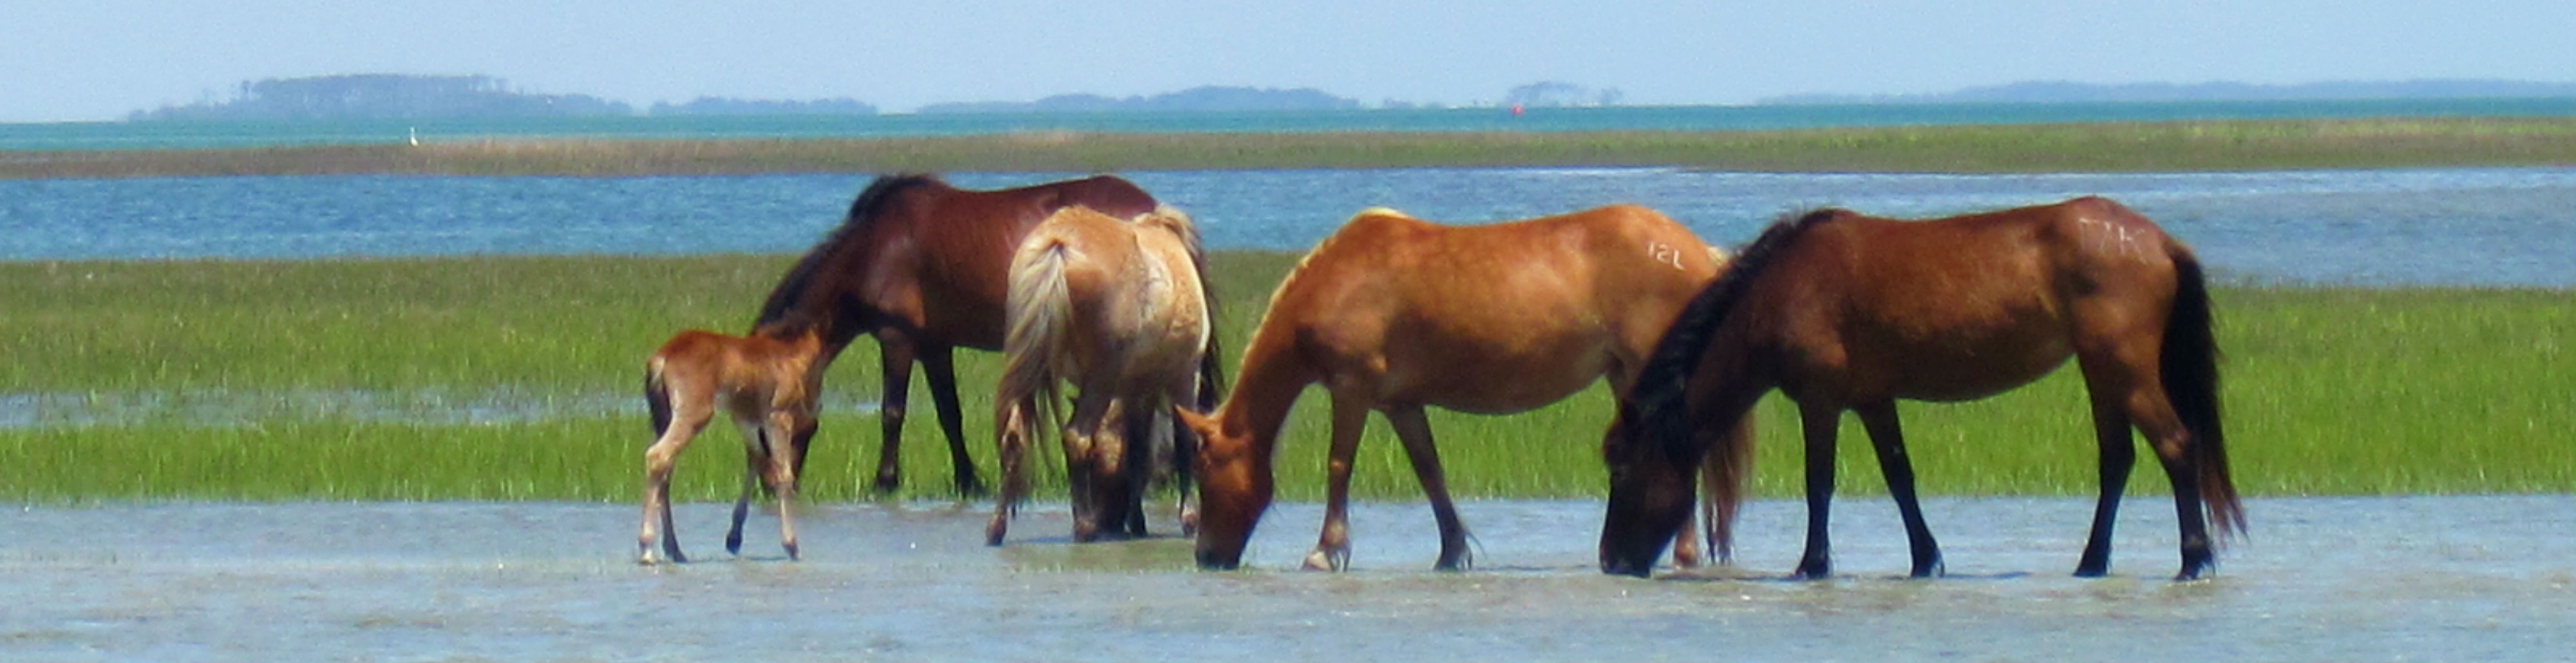 The Shackleford horses graze in the marsh.